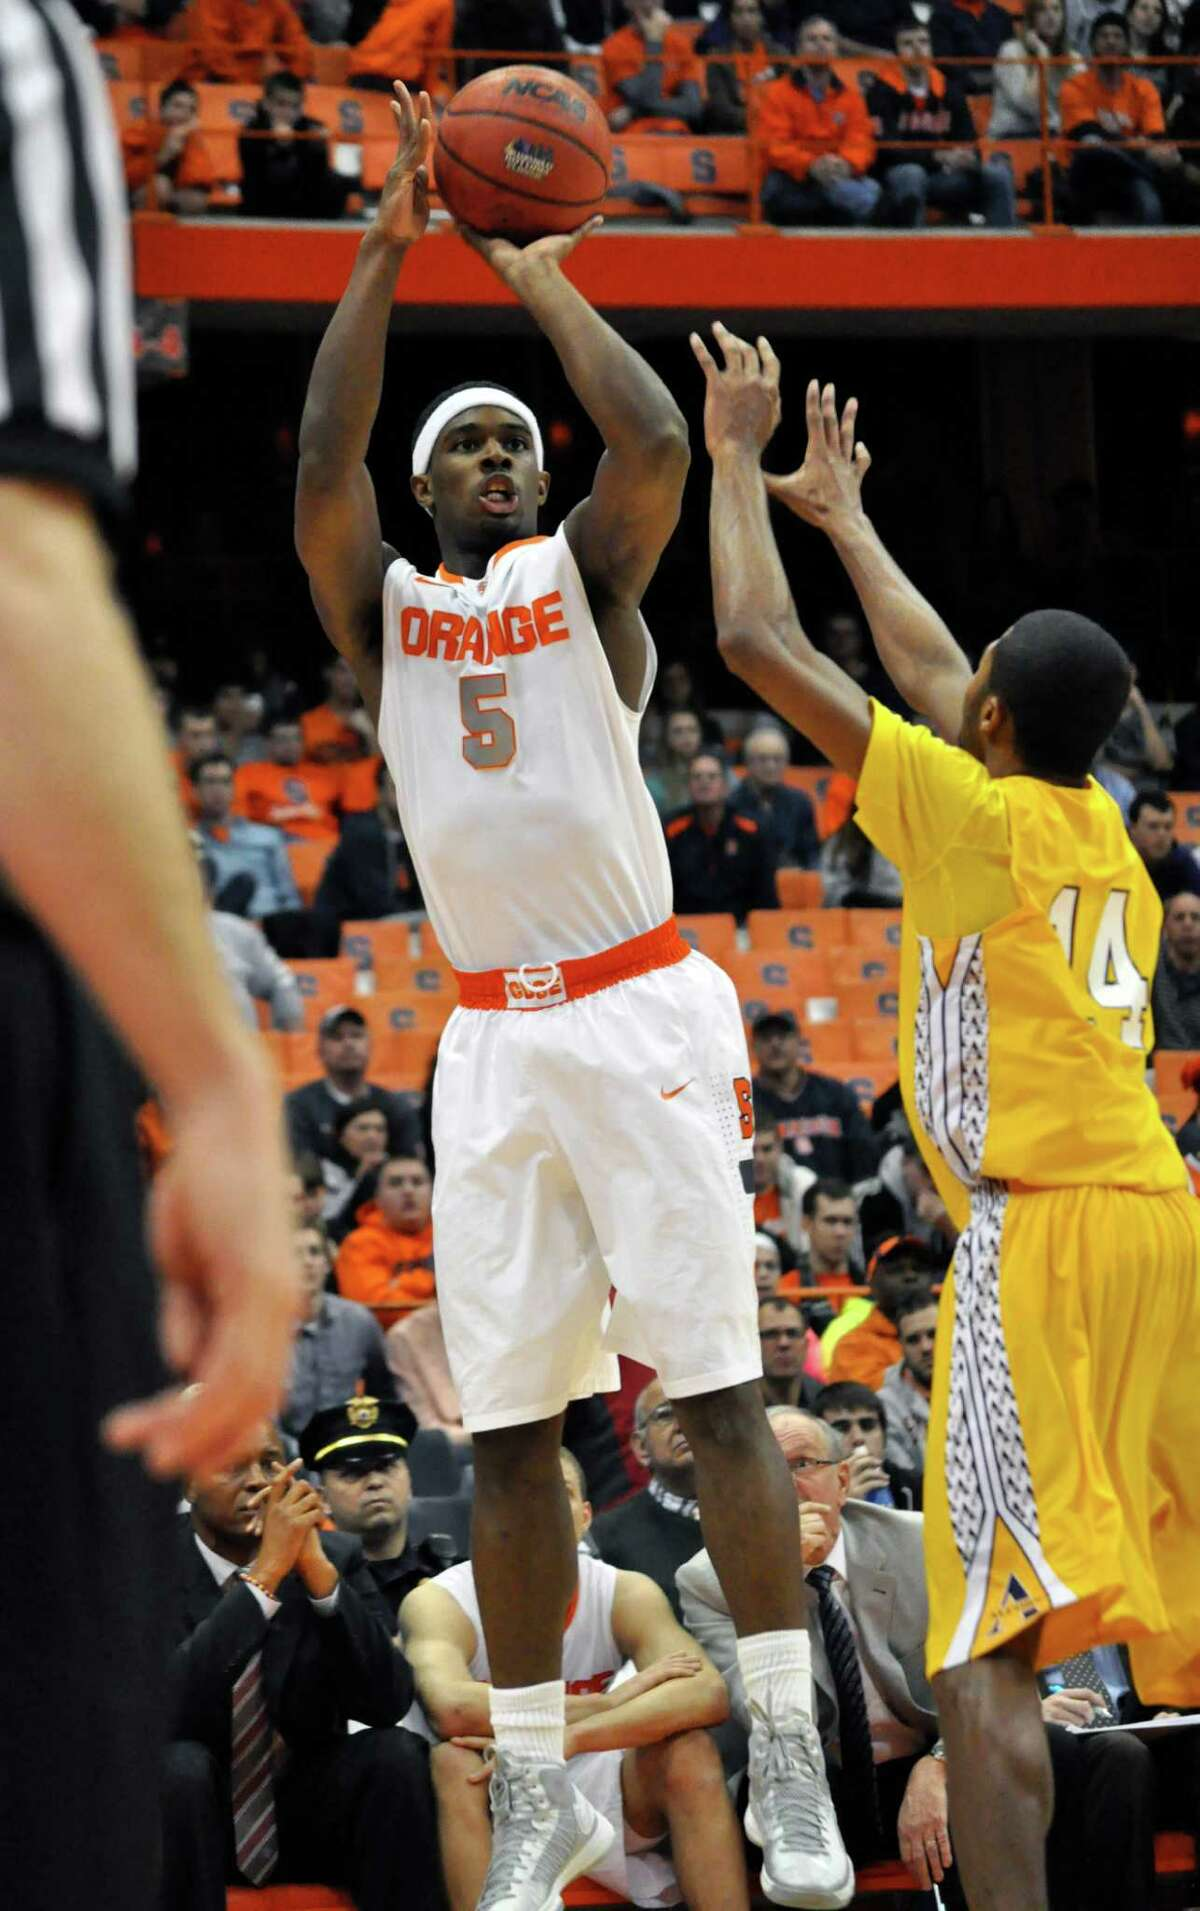 Syracuse's C. J. Fair shoots against Alcorn State's Anthony Nieves during the second half of an NCAA college basketball game in Syracuse, N.Y., Saturday, Dec. 29, 2012. Syracuse won 57-36. (AP Photo/Kevin Rivoli)